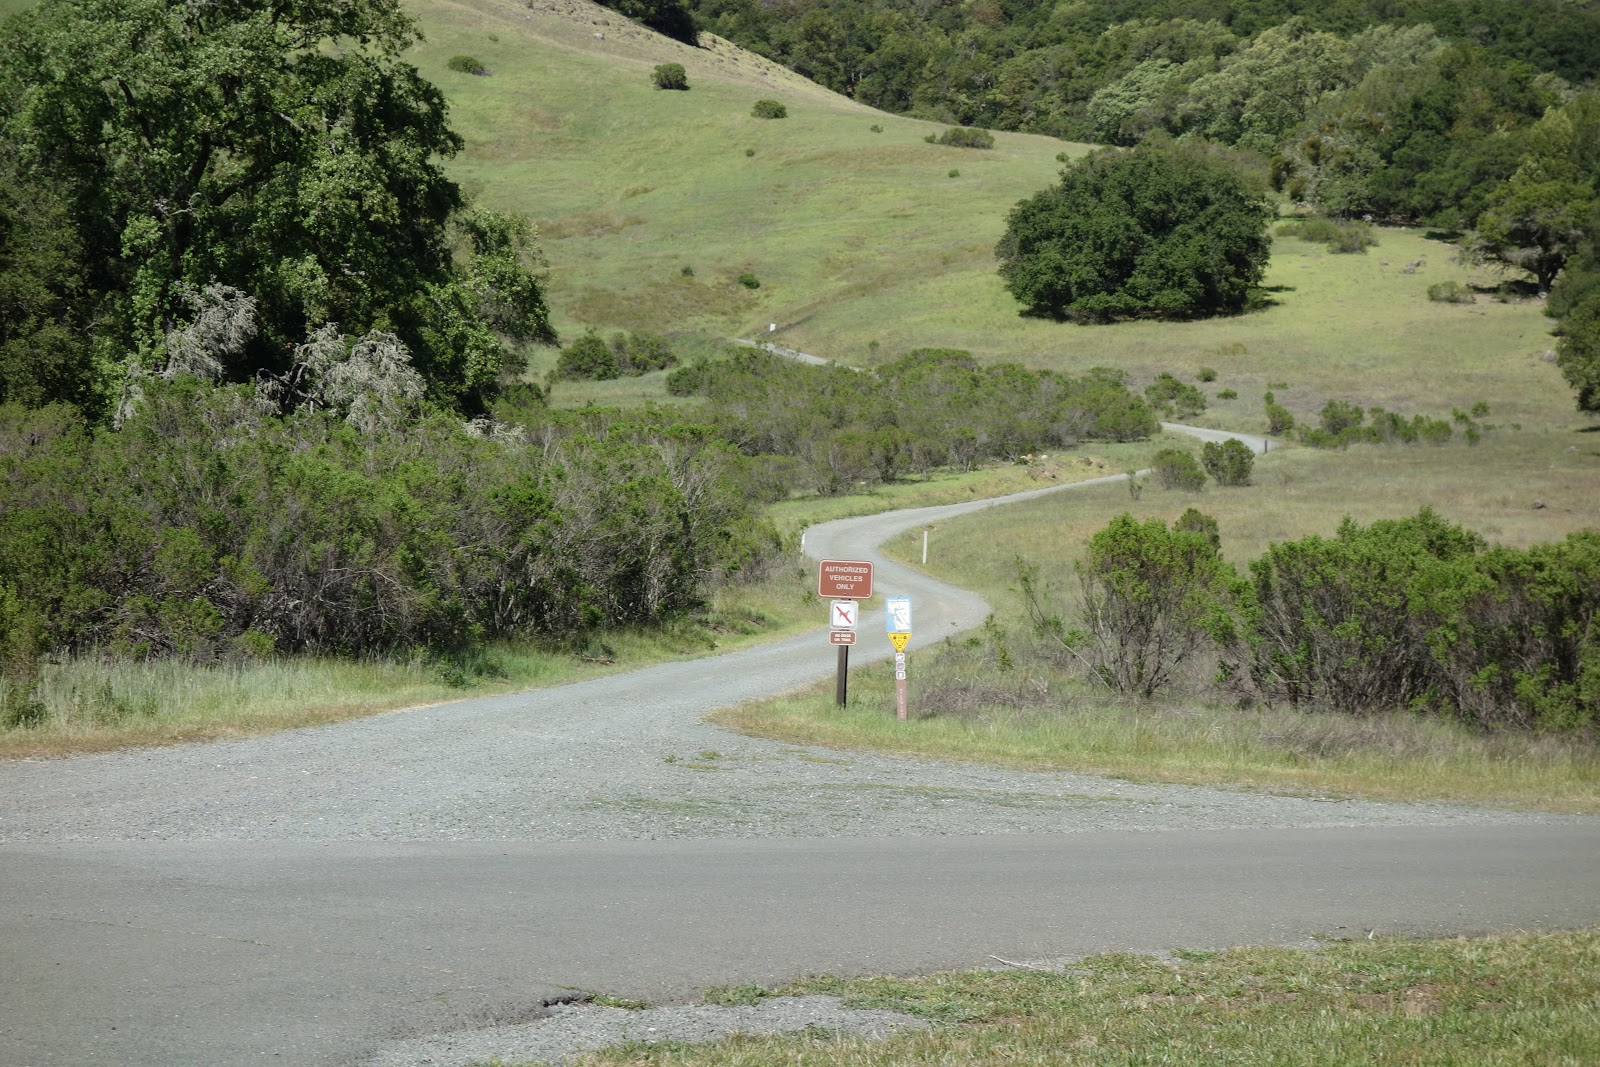 Climb Bald Mountain by bike - sign and gravel section